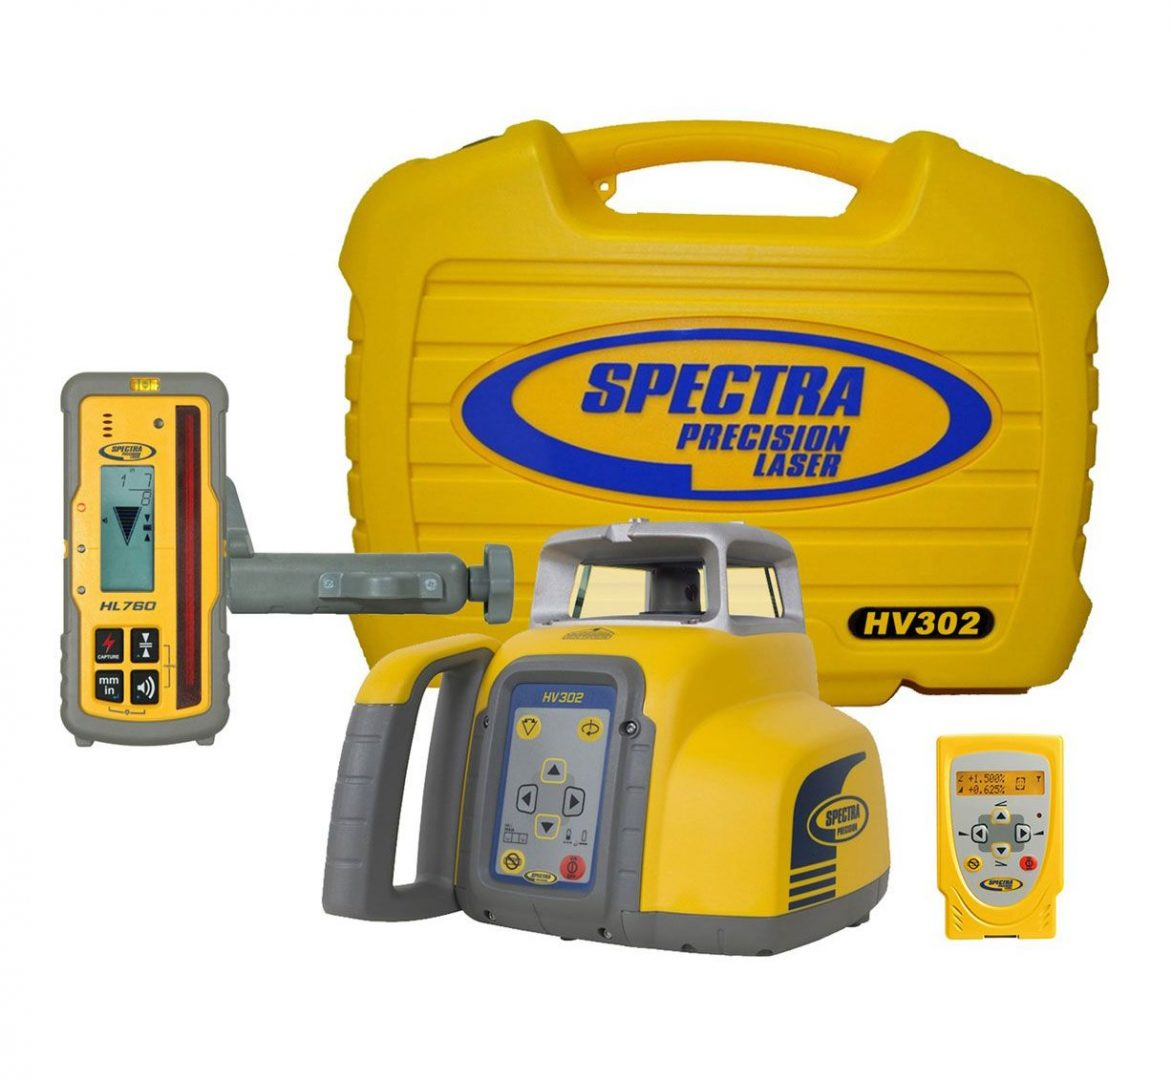 HV302 Laser Level From Spectra Precision